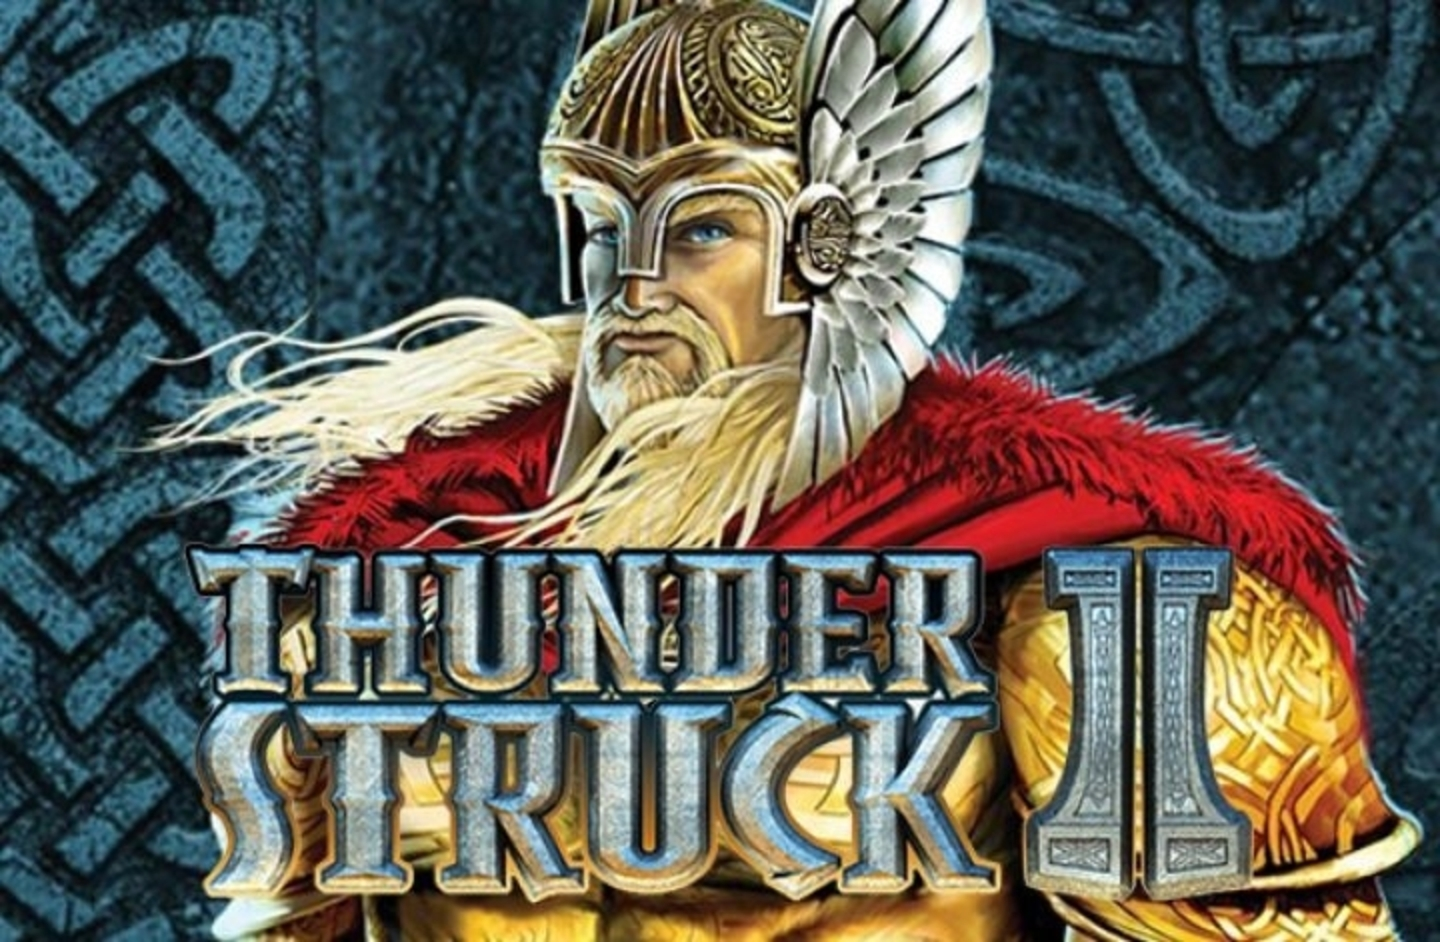 The Thunderstruck II Online Slot Demo Game by Microgaming